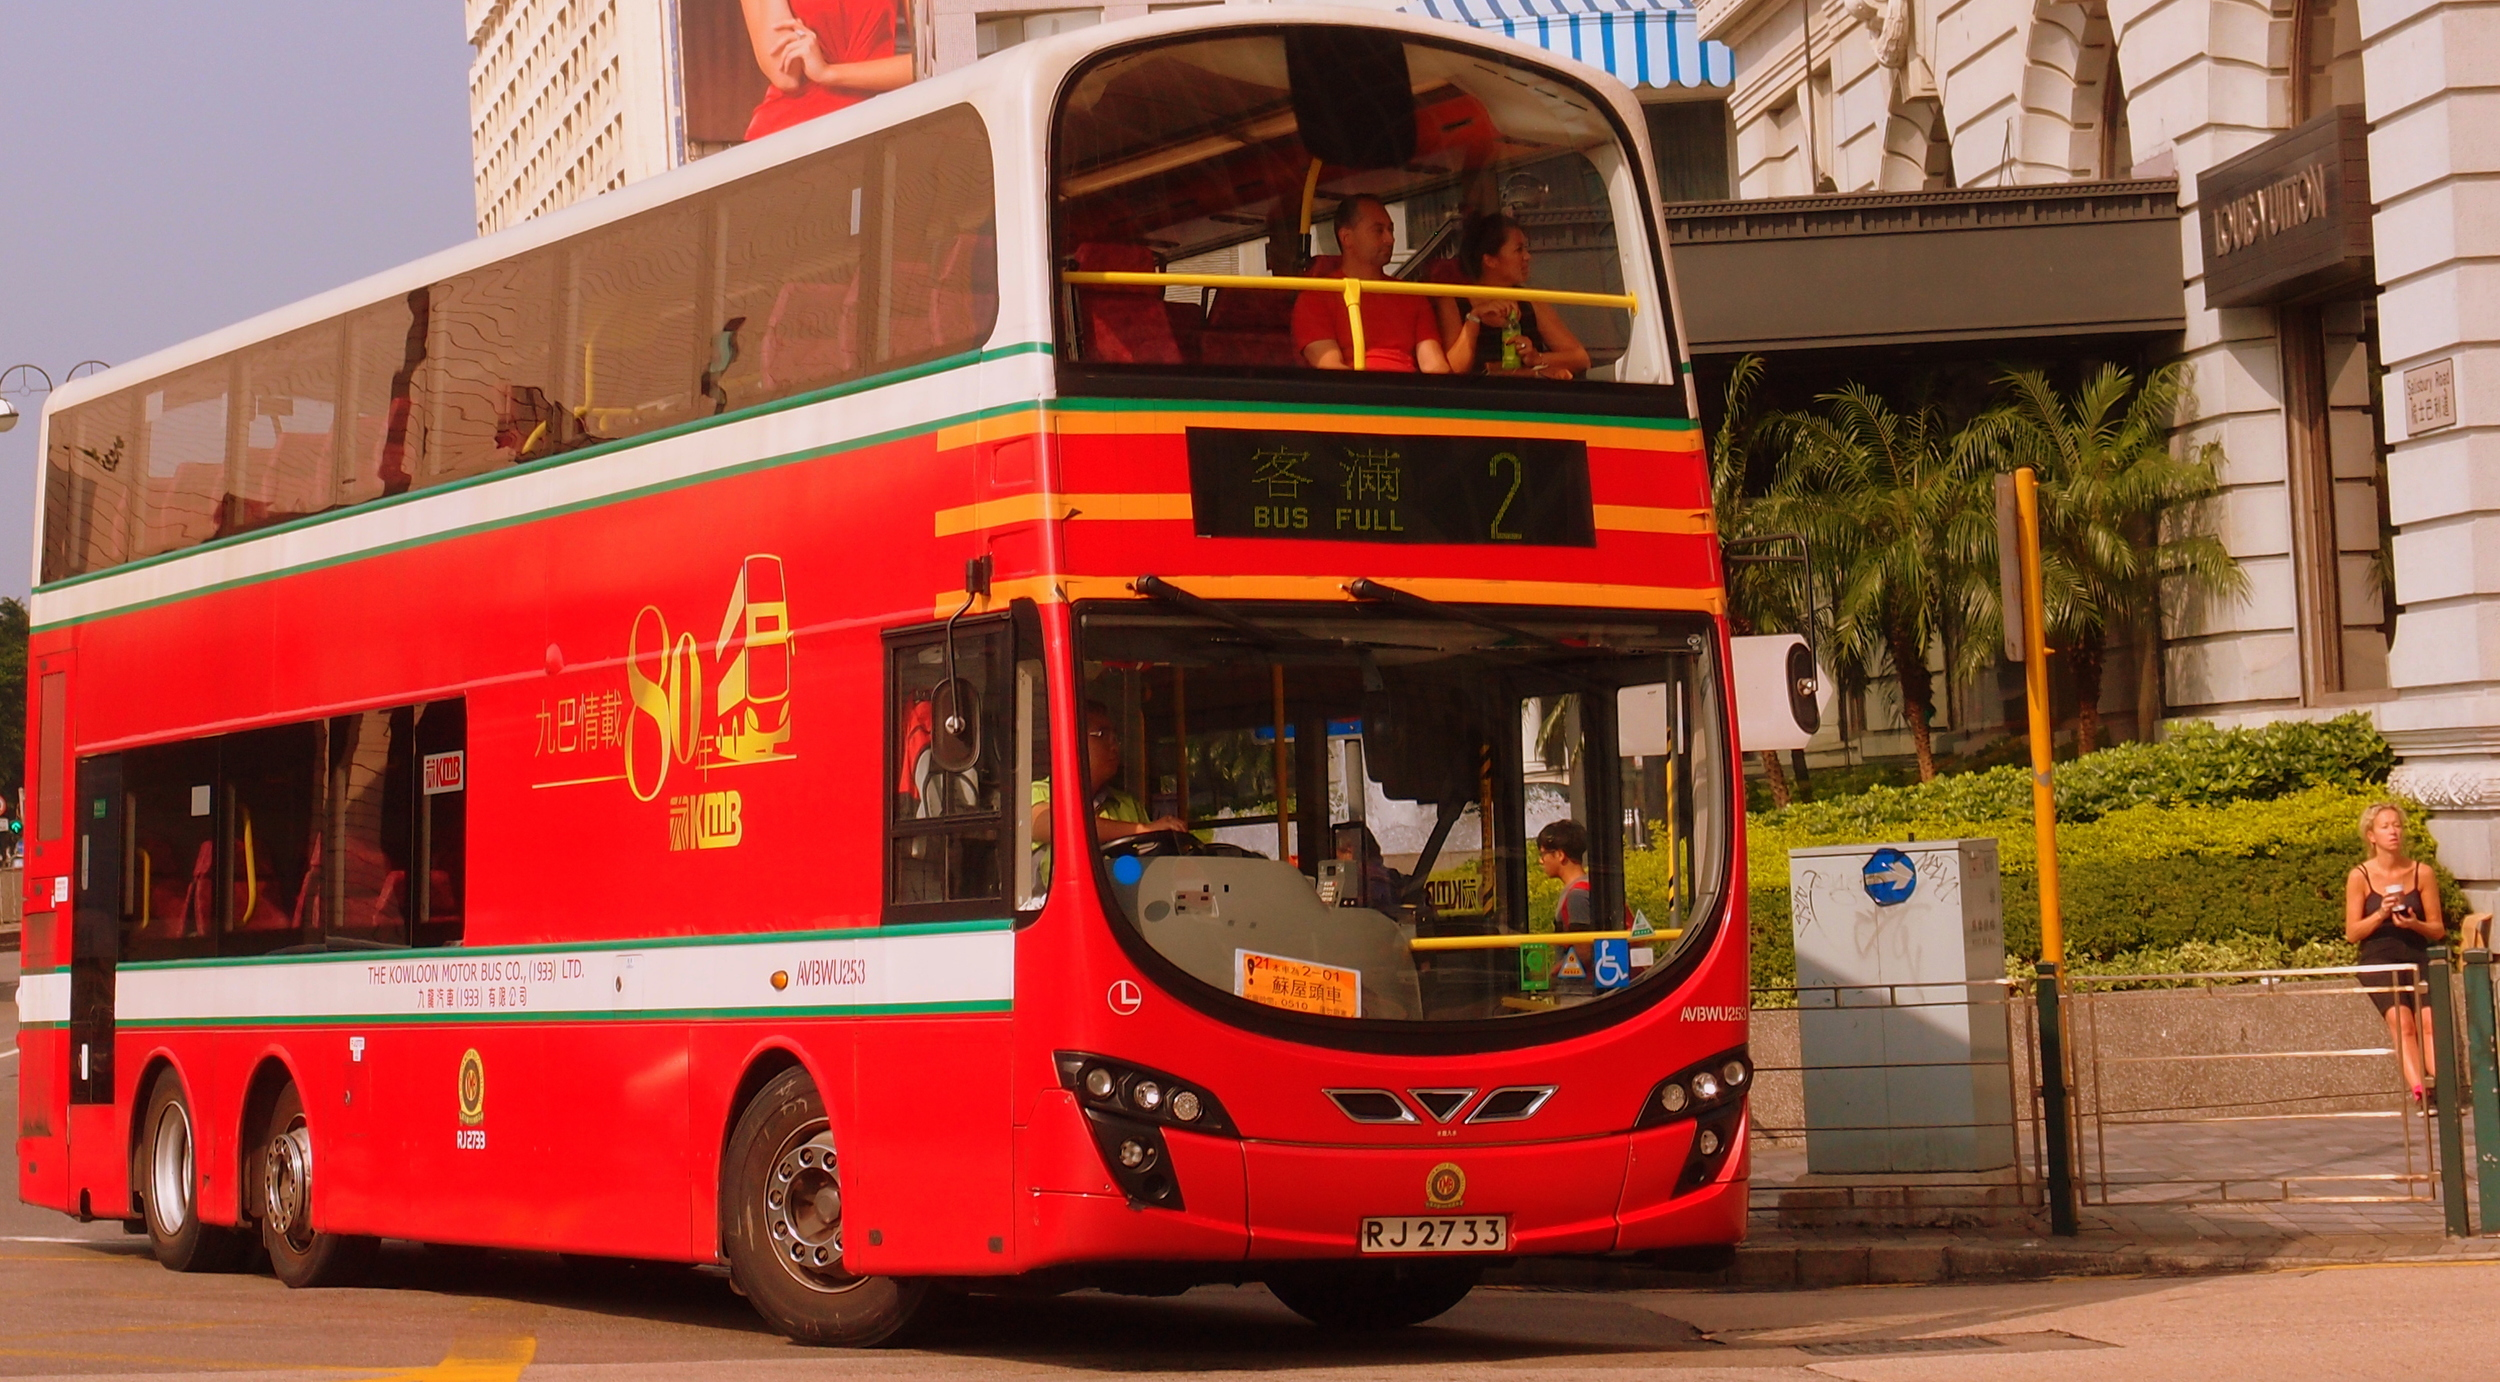 The 80th Anniversary bus of the Kowloon Motor Bus Company next to the Peninsula Hotel